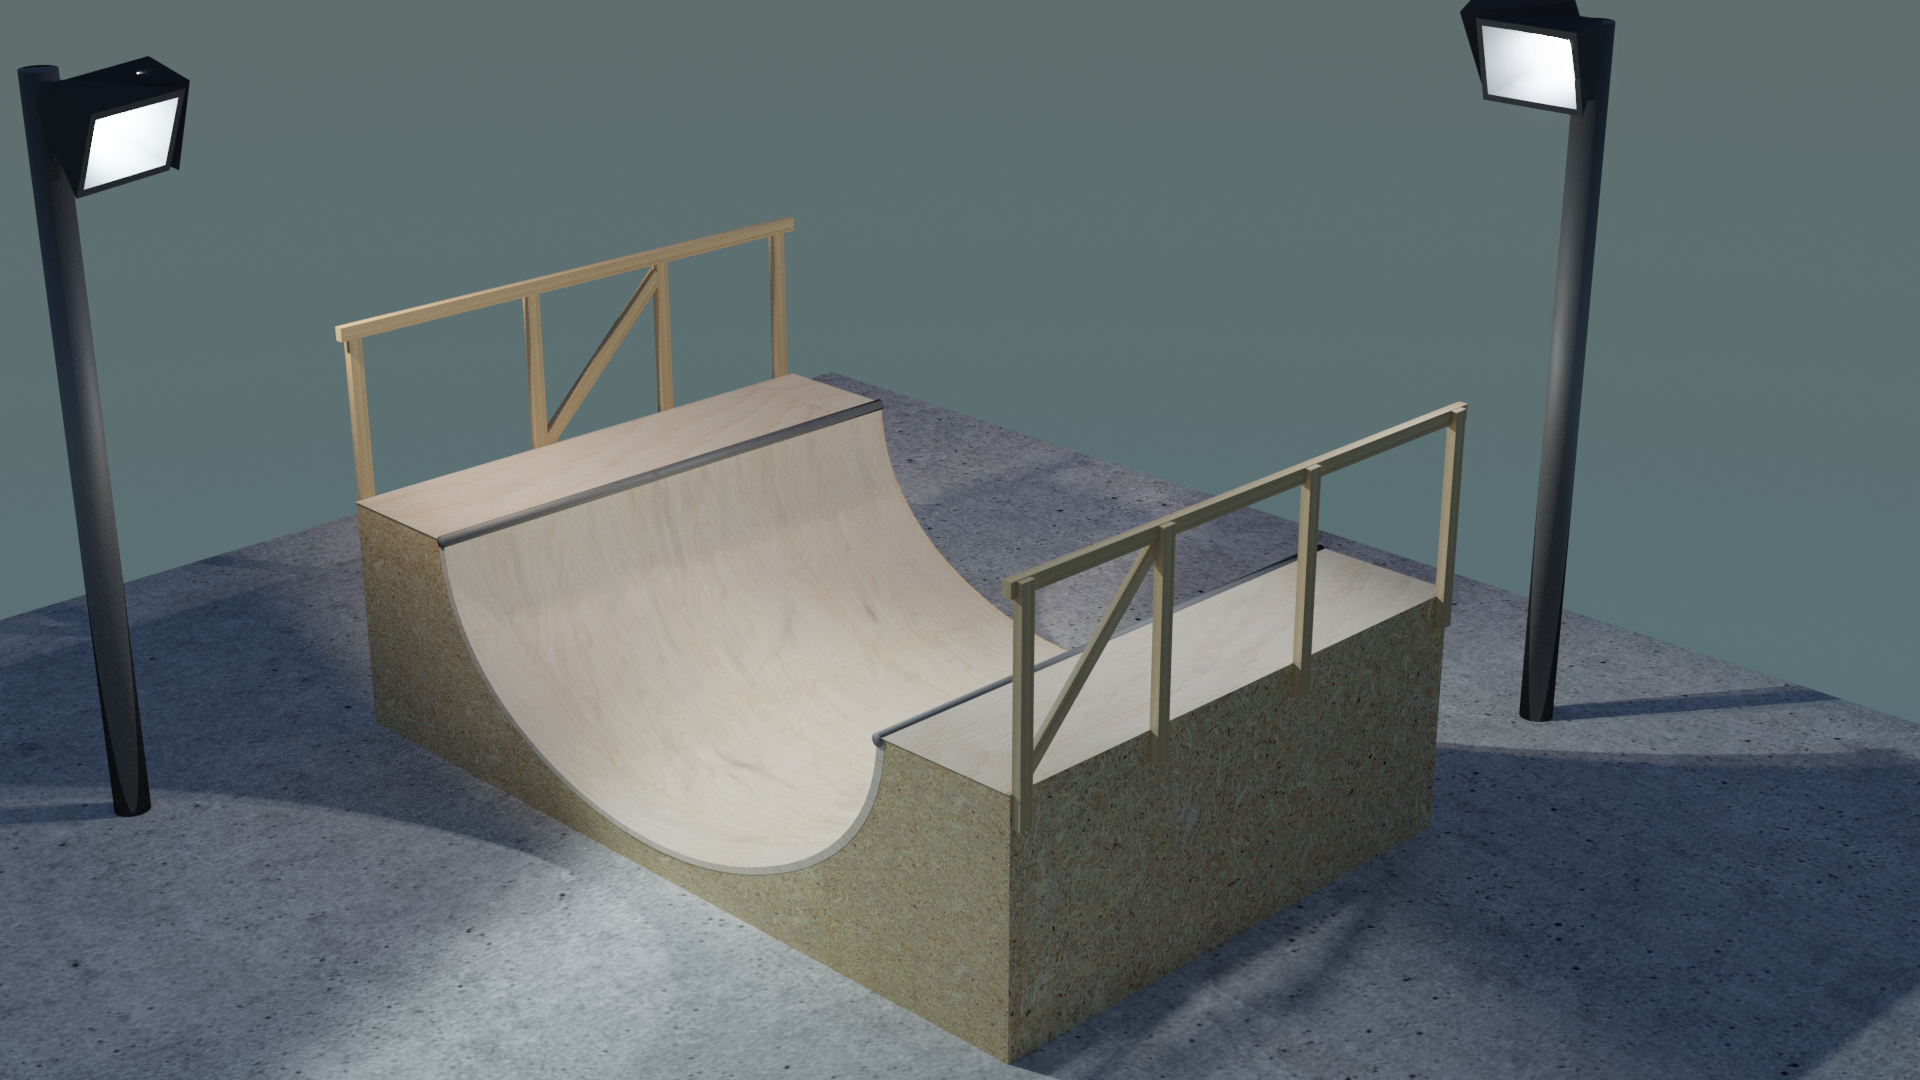 Skate Ramp: Blender Render